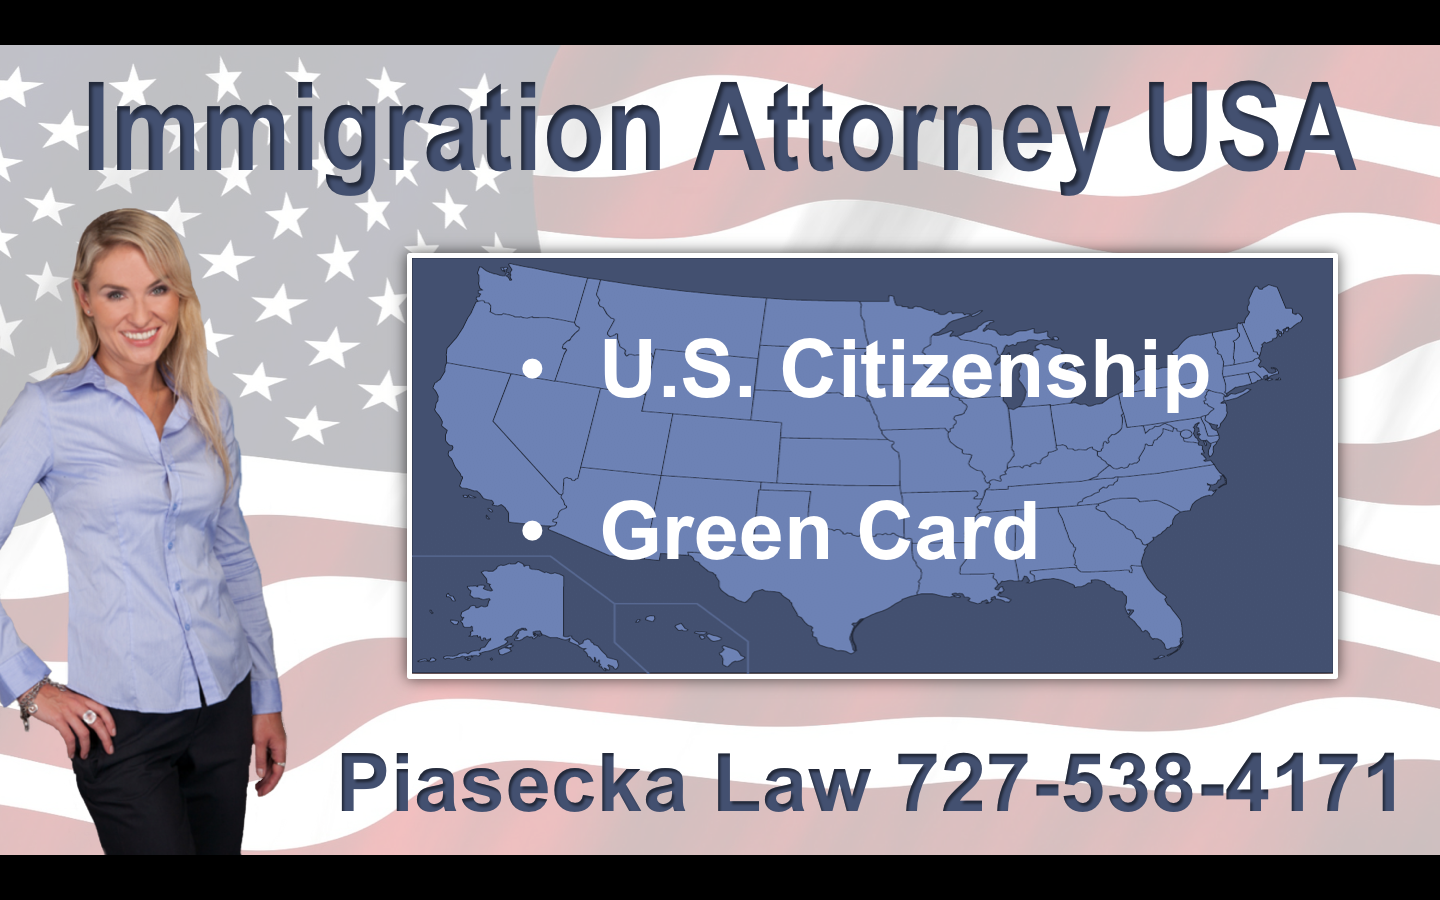 Immigration-Attorney-USA-Attorney-Agnieszka-Aga-Piasecka